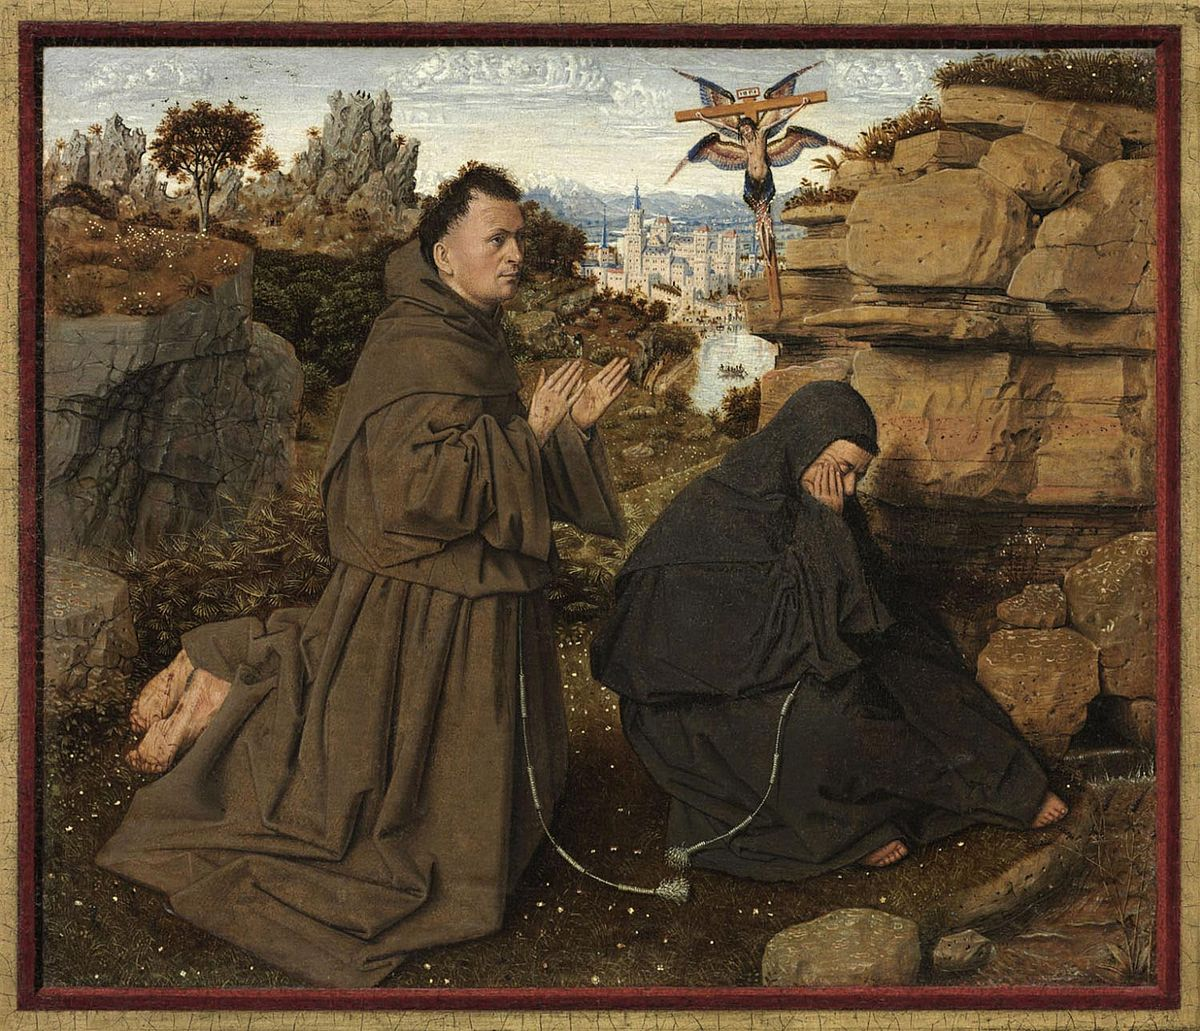 a biography of the biography of saint francis of assissi Short biography of st francis of assisi a well-written brief biography of saint francis of assisi, feastday october 4.